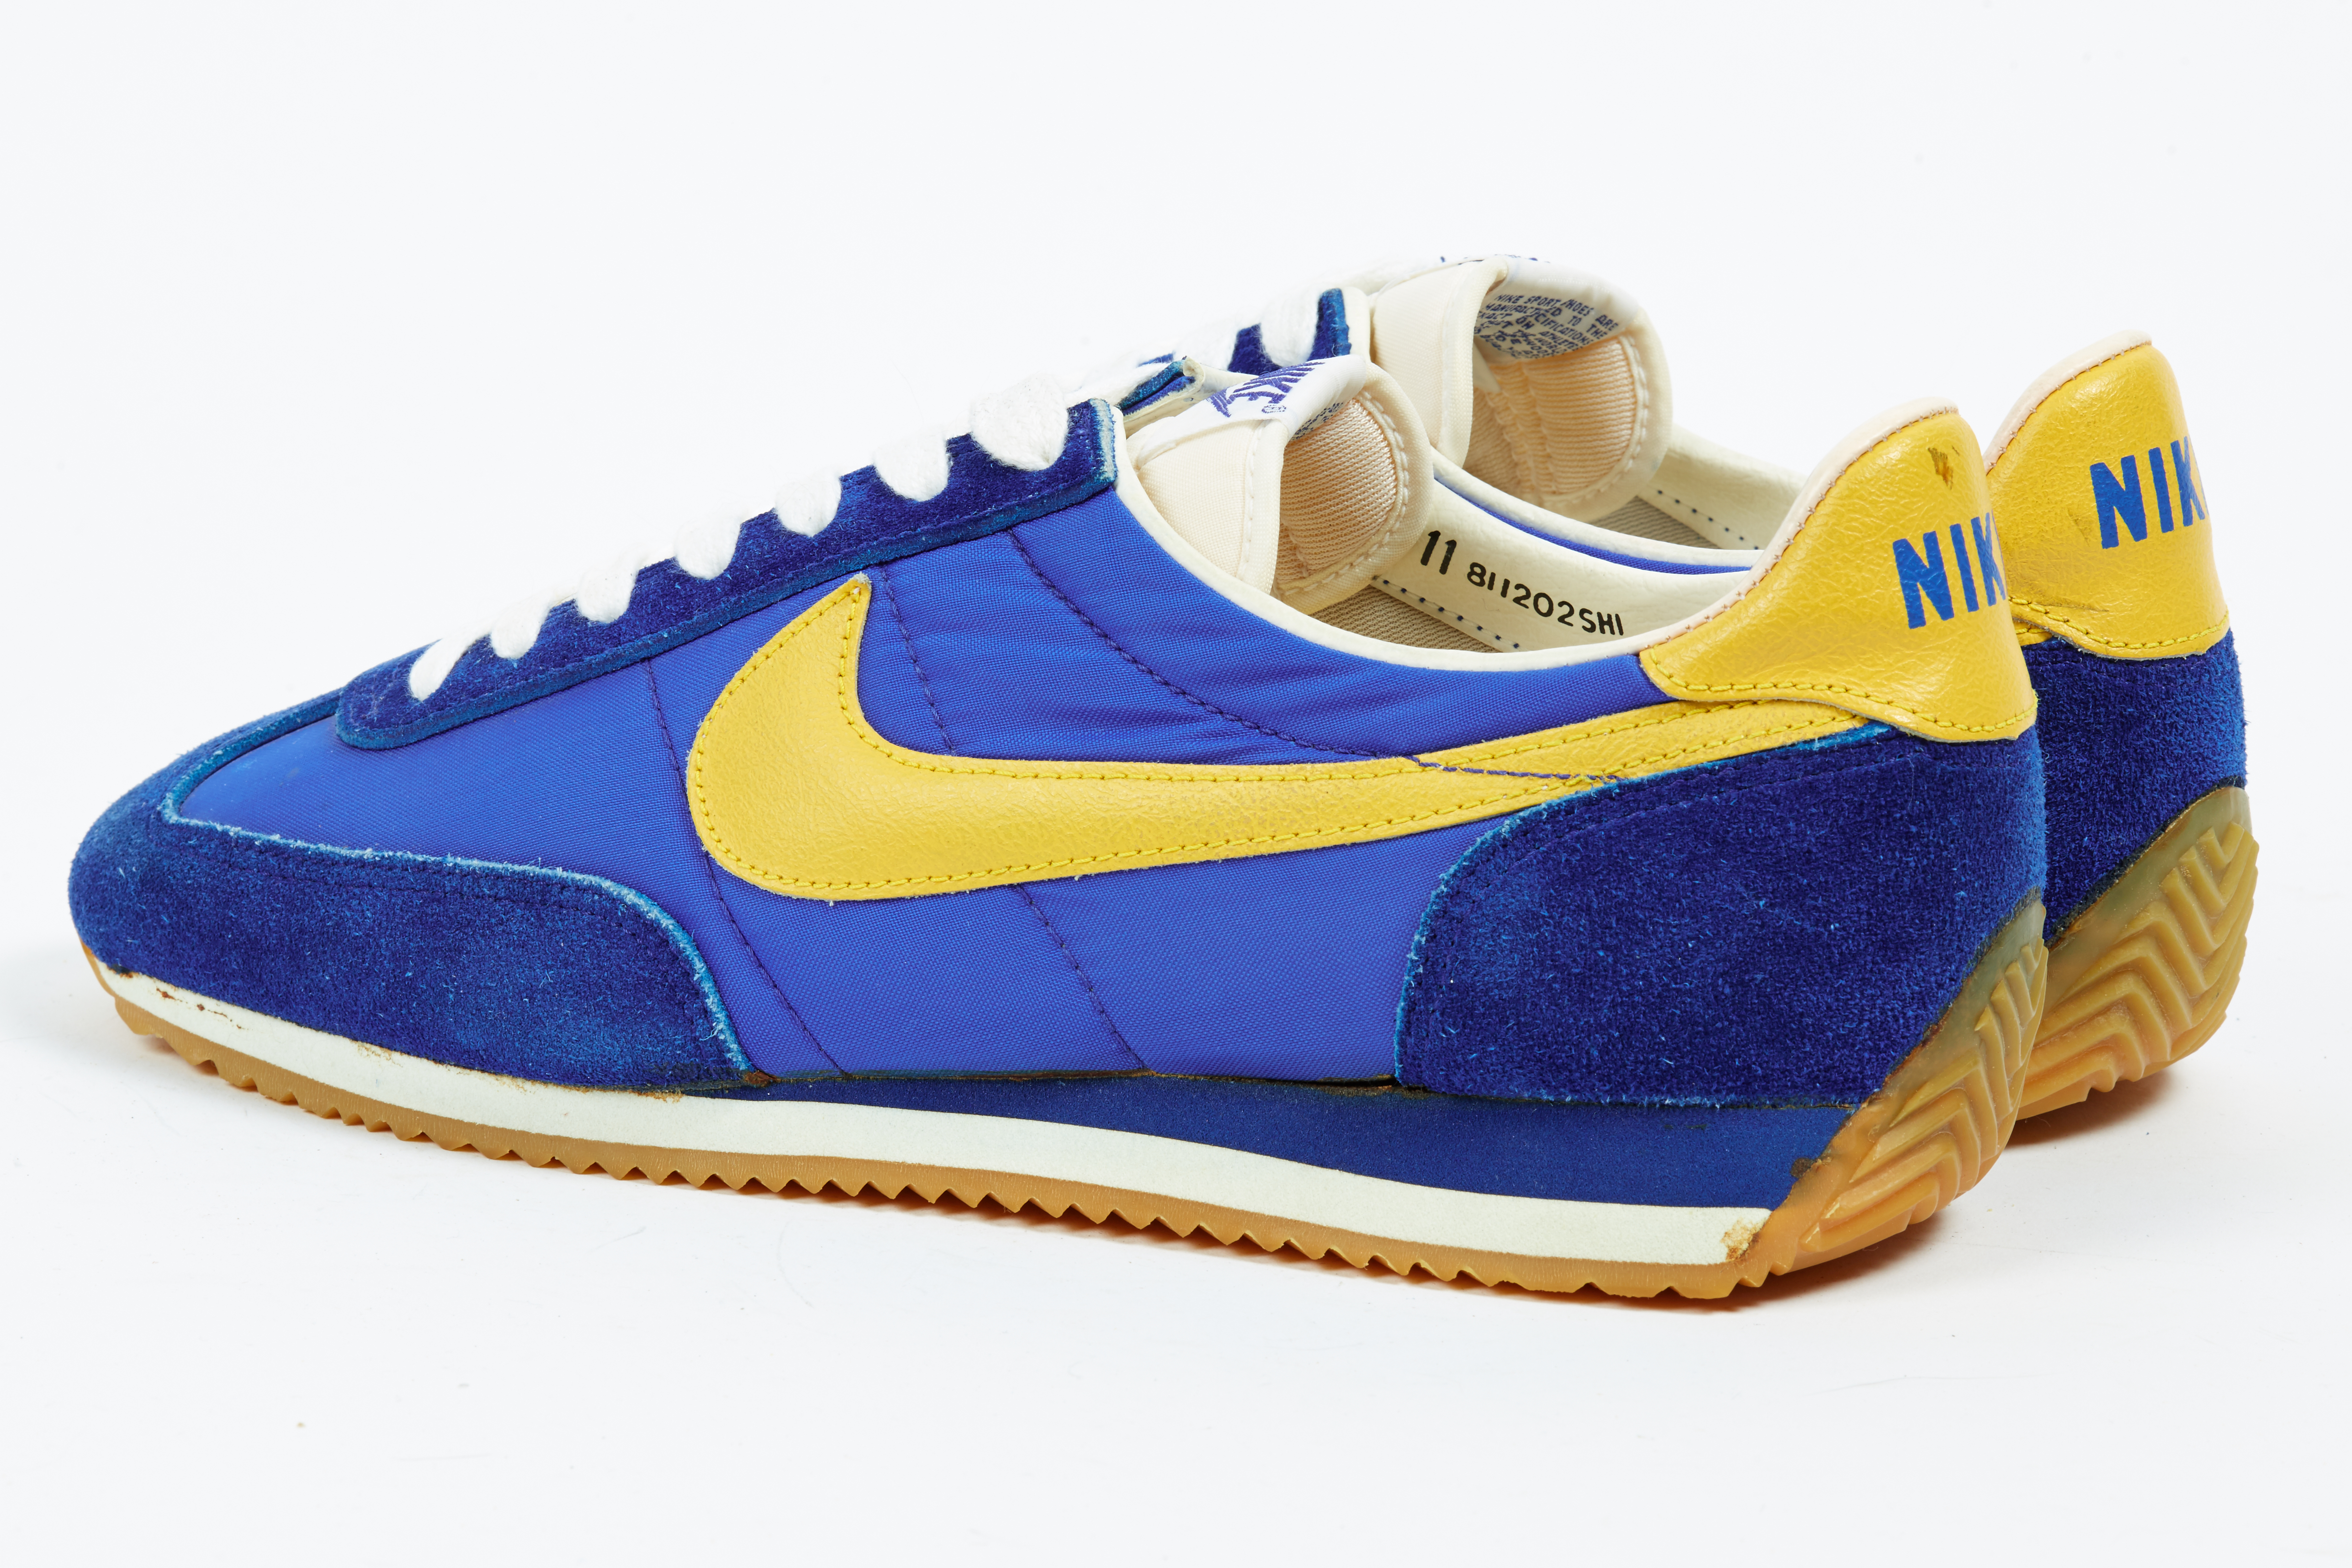 official photos c4562 a987e Vintage 1981 Nike Oceania - Shoes Your Vintage. )